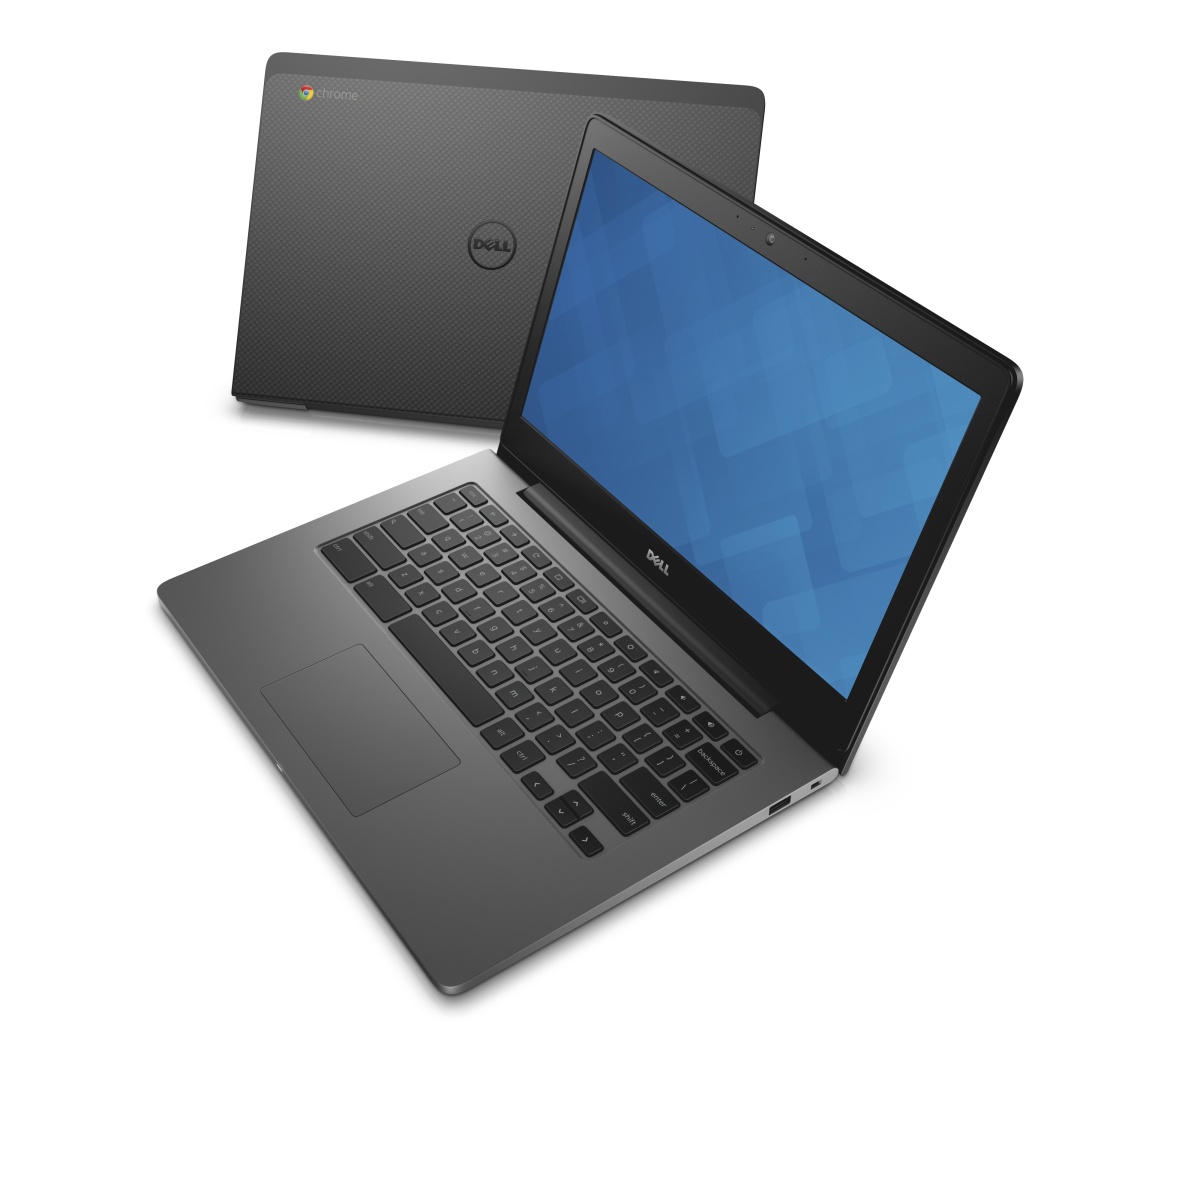 Dell Chromebook 13 press image courtesy of Dell Inc.